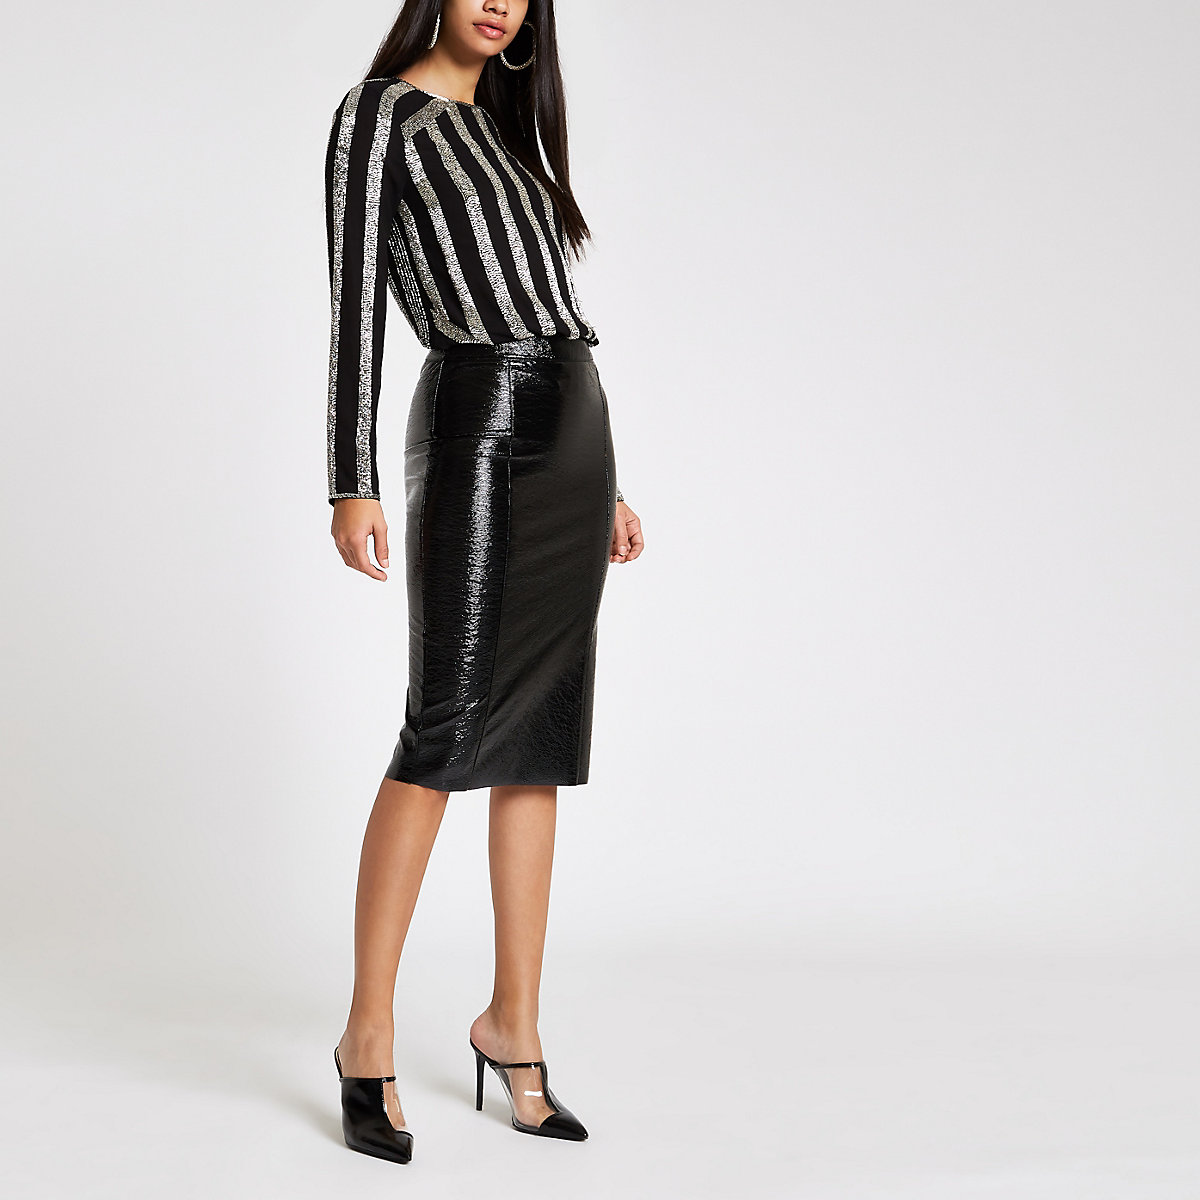 Black vinyl pencil skirt